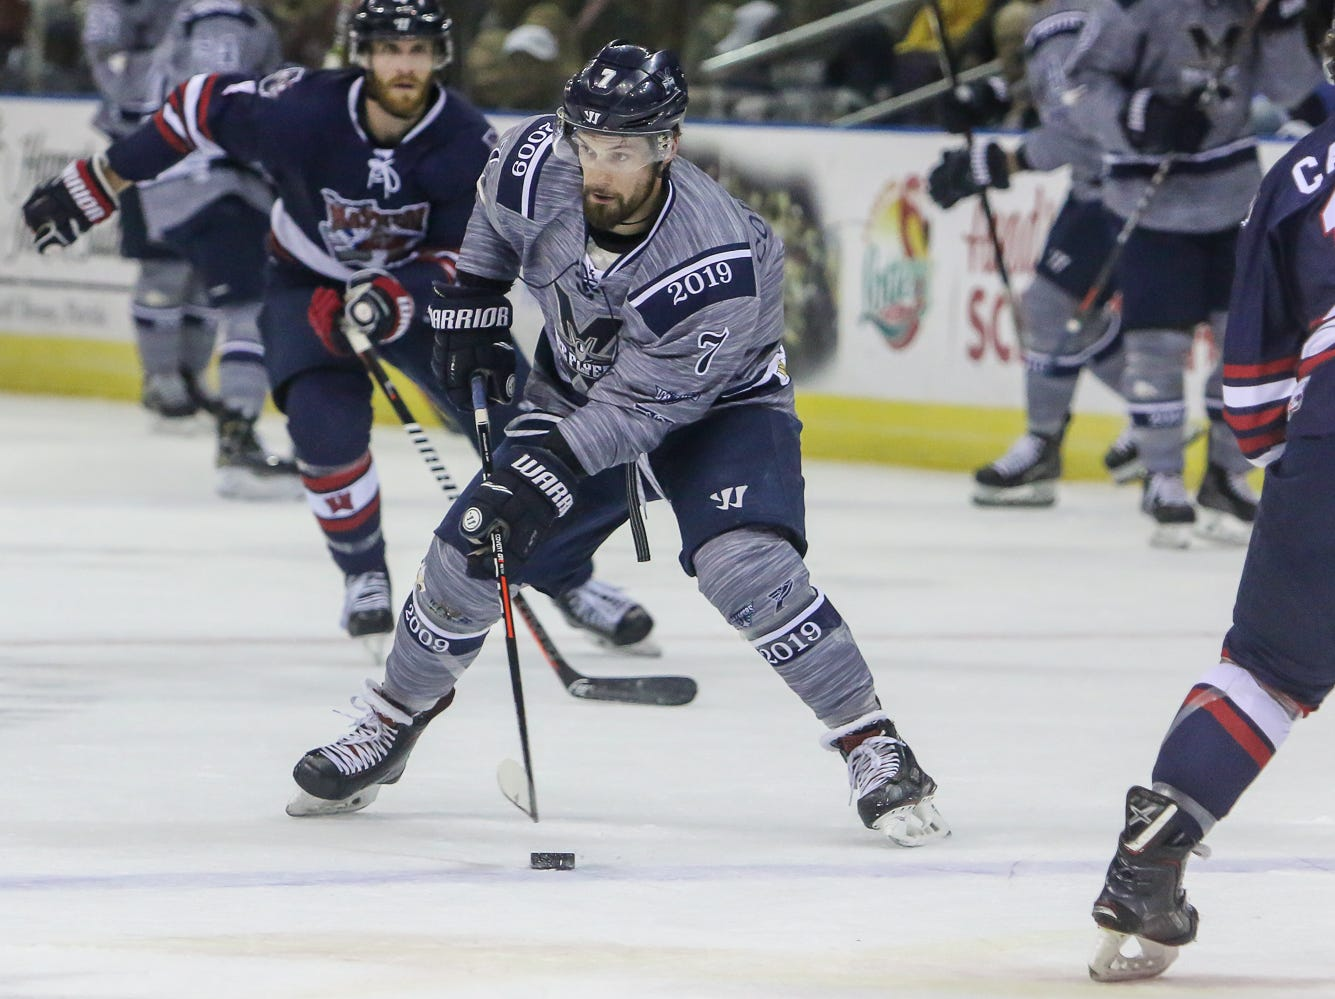 Pensacola's Josh Cousineau (7) slips the puck past the Macon defenders during the last home game of the regular season at the Pensacola Bay Center on Saturday, March 23, 2019. With over 4,300 people in attendance for Pensacola's 3-1 victory, the Ice Flyers mark six straight years of over 100,000 people at their home games each season. The team has won their last five games in a row and will finish out their last five games on the road before entering the playoffs in a couple of weeks.